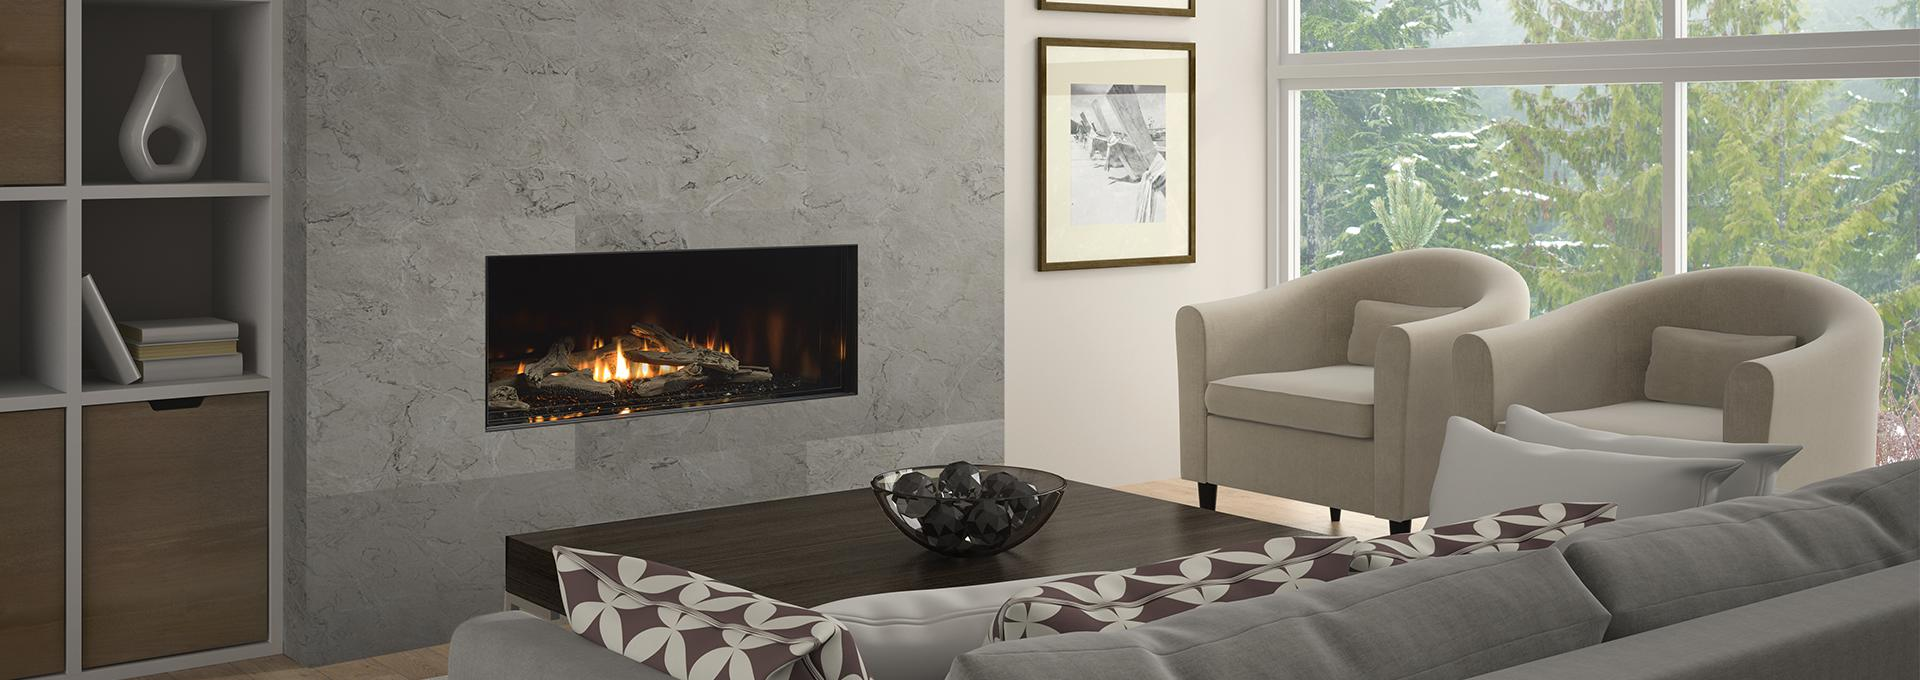 of that gas modern decoration inserts fireplace new insert type any suit